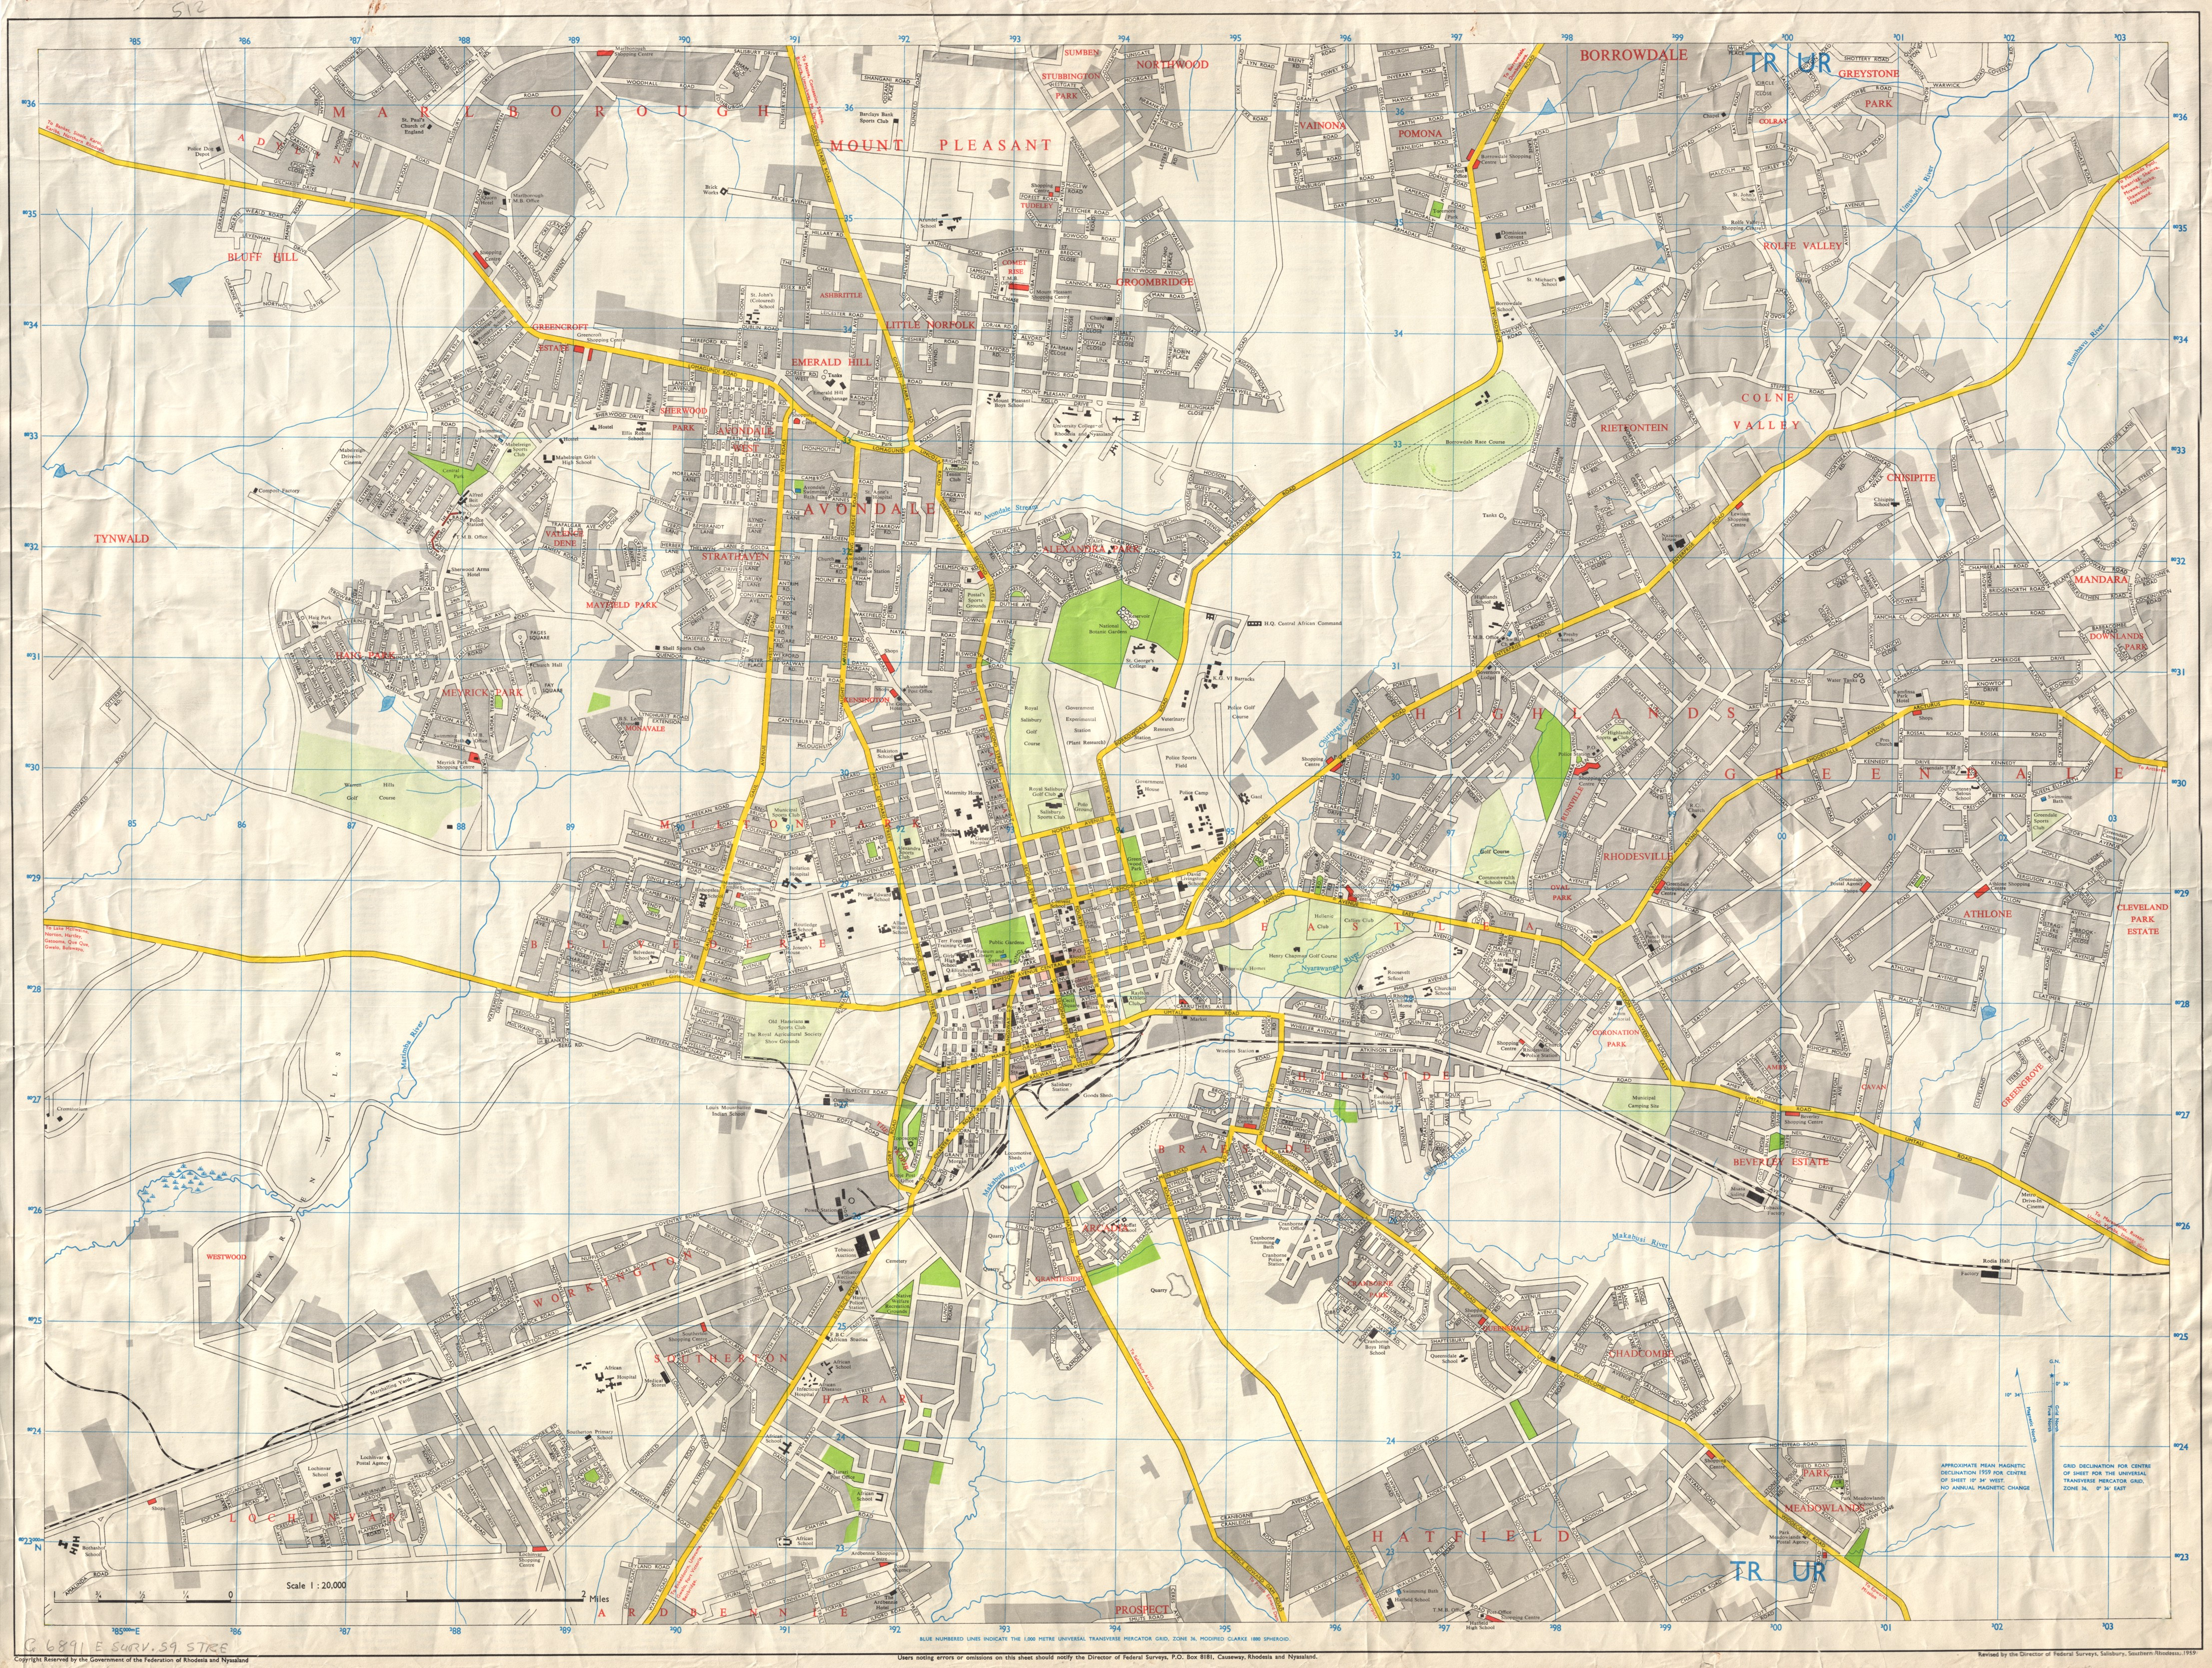 Street map of Salisbury | UCT Liries Digital Collections on bridge street map, road map, parking lot map, jackson street map, a street art, a street intersection, washington street map, weather map, state map, detailed street map, physical map,